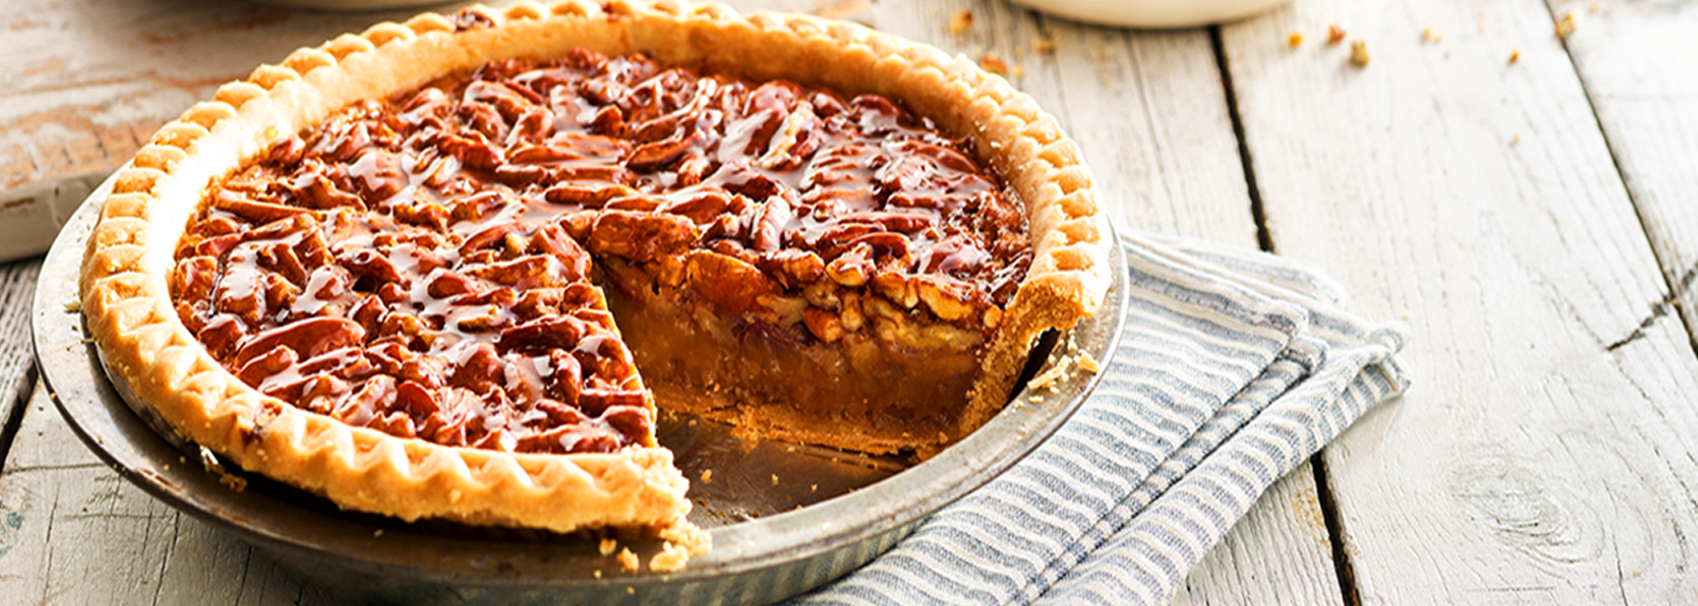 Our Annual Pecan Pie Sale is On!